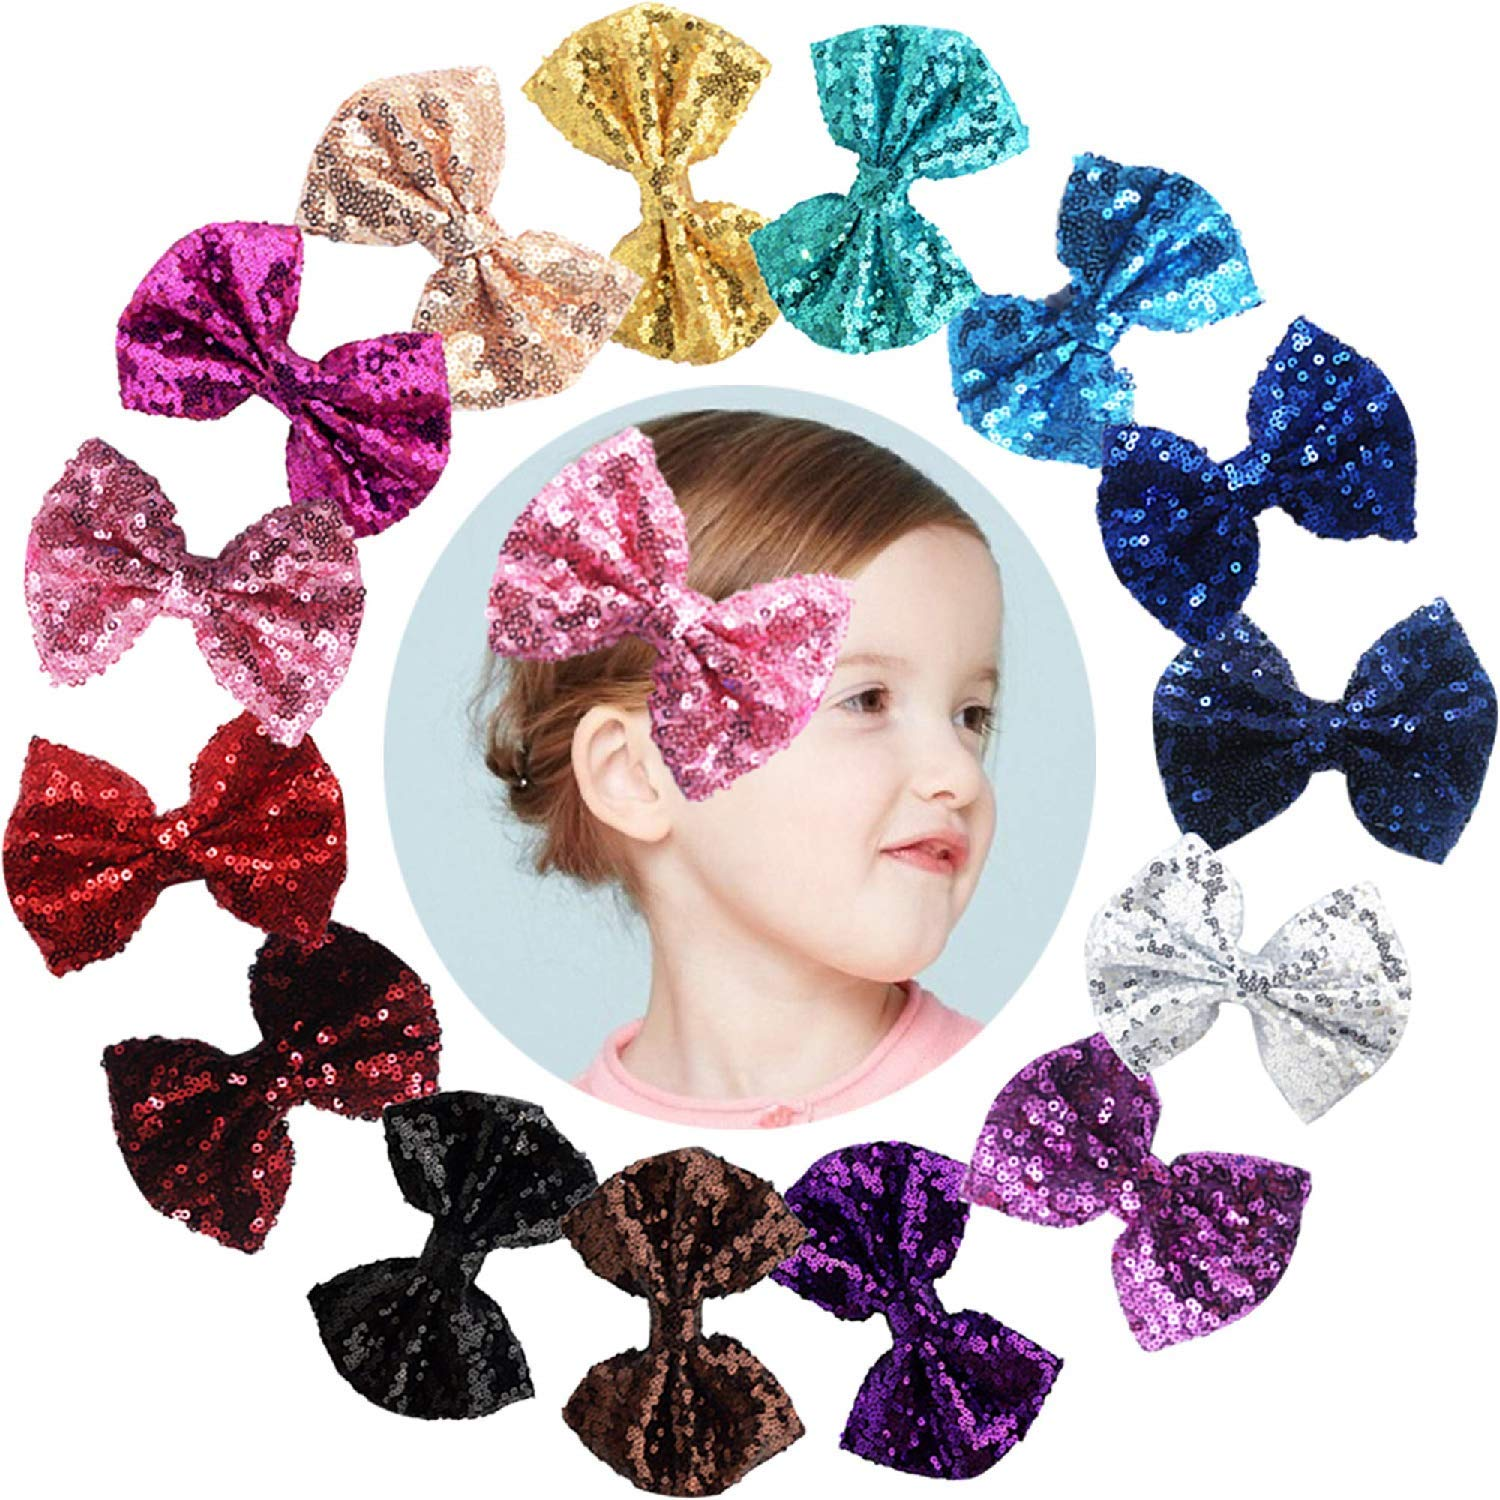 """Party Hair Bows Clips for Girls 15pcs Bling Sparkly Glitter Sequins Big 4"""" Hair Bows Alligator Hair Clips Nylon Mesh Ribbon Bowknot Hairpins for Baby Girls Kids Children"""